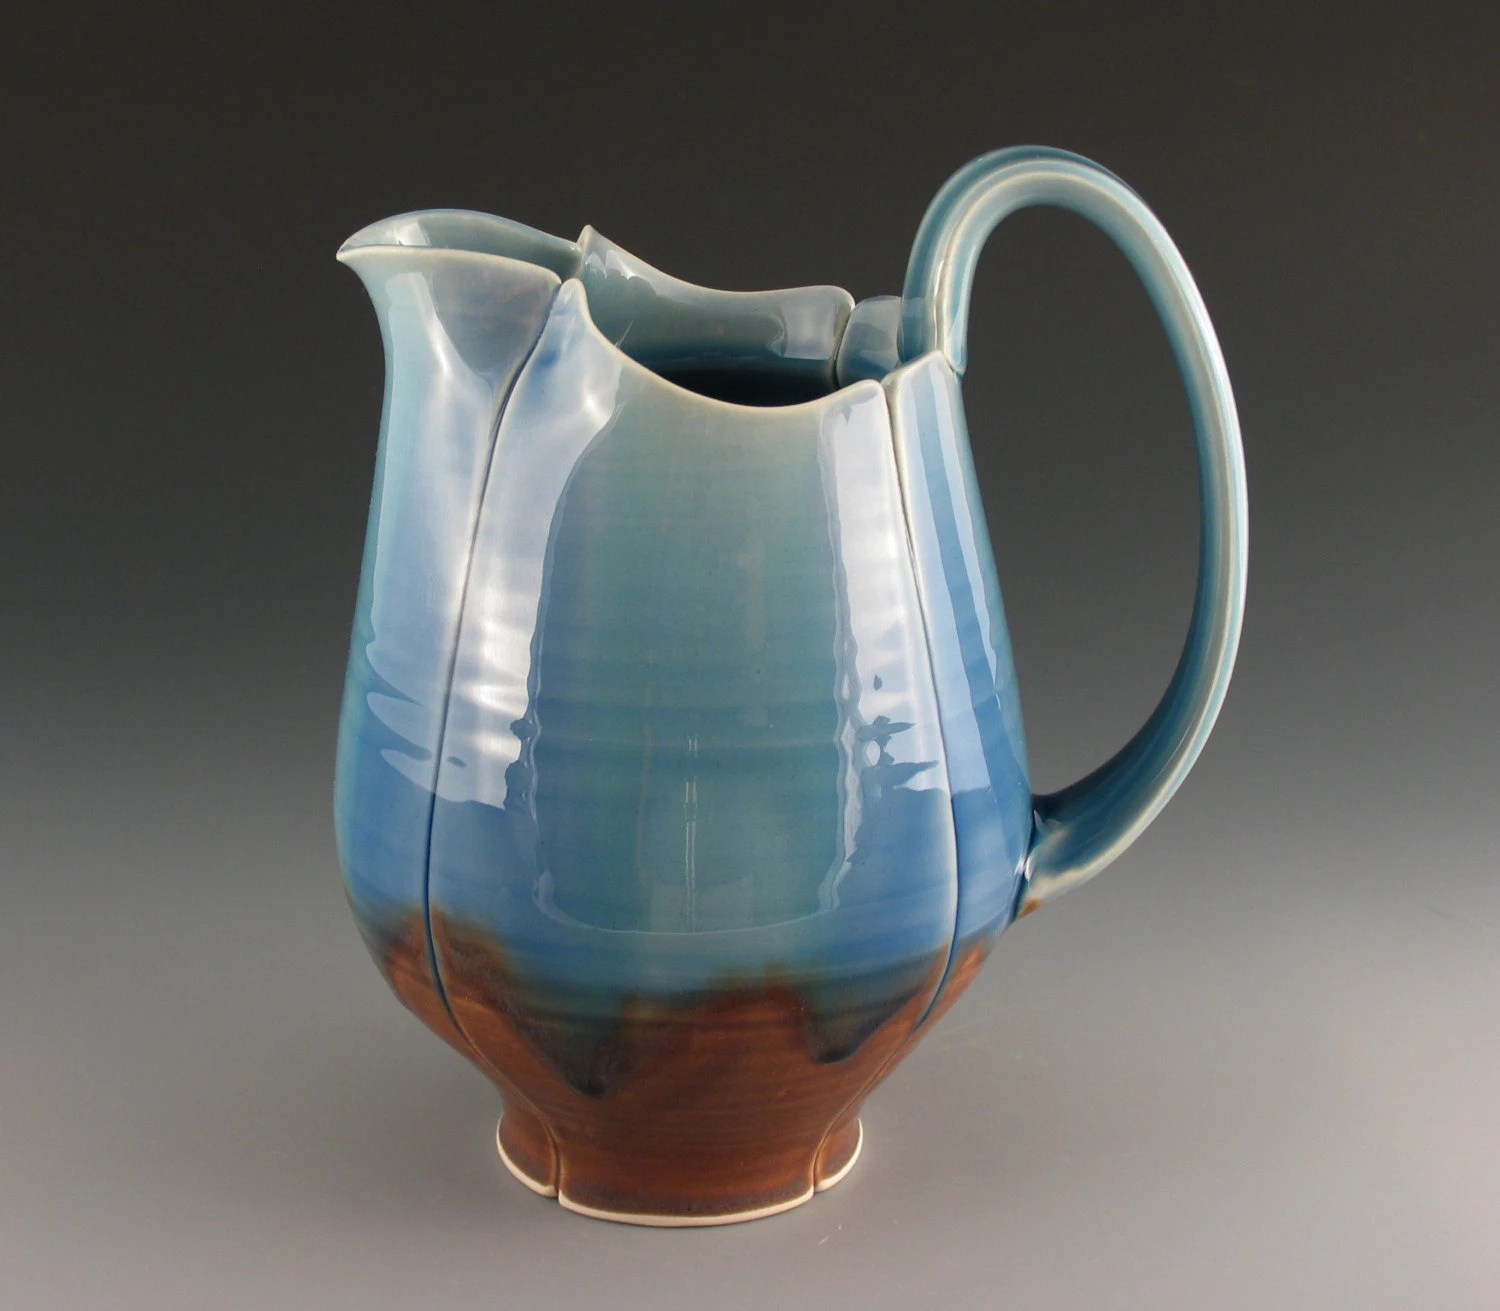 Medium Blue Stripe Pitcher 40 Oz.